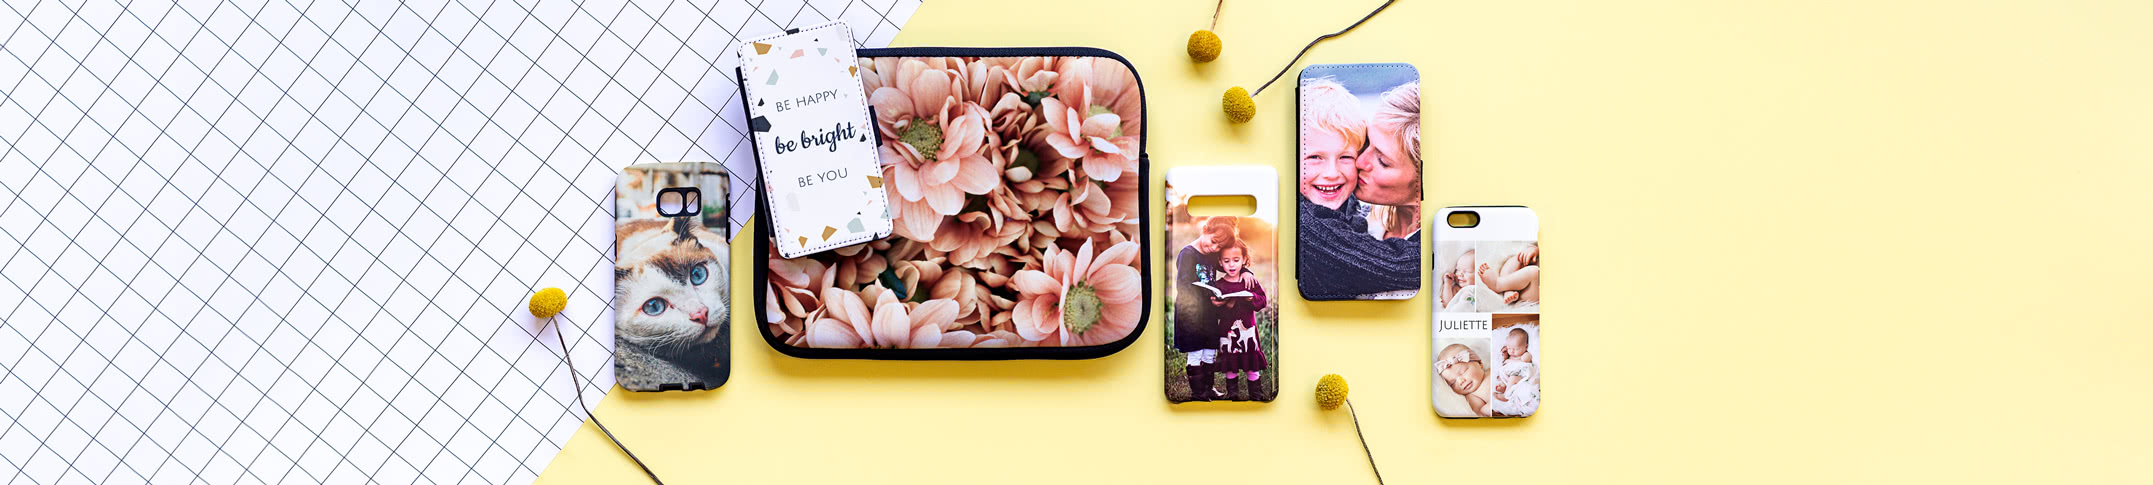 Smartphone & tablet cases